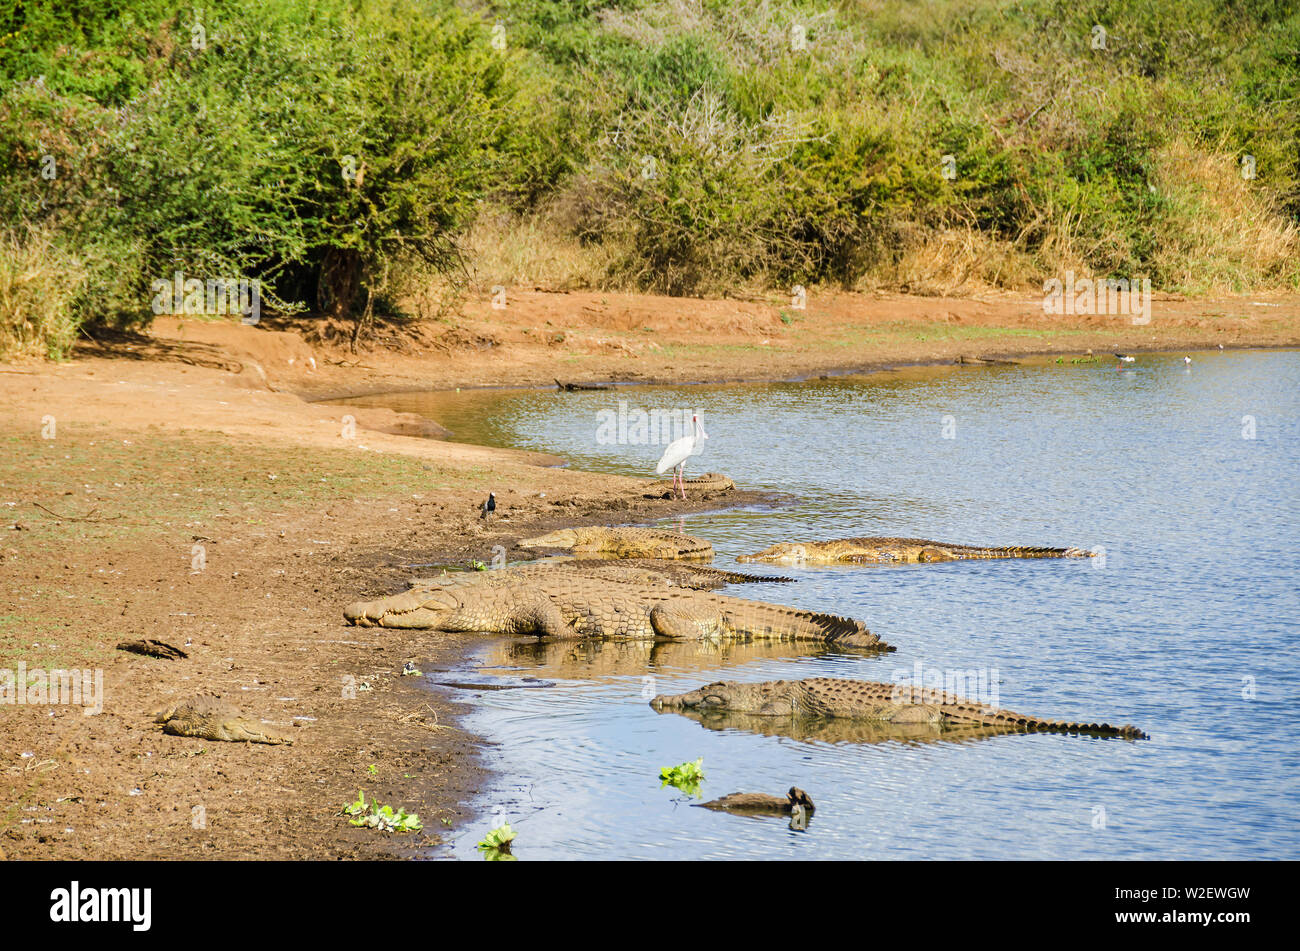 Nile Crocodiles (Crocodylus niloticus)  and African spoonbill (Platalea alba) on the banks of the Sabie River, one of the most biologically diverse ri - Stock Image